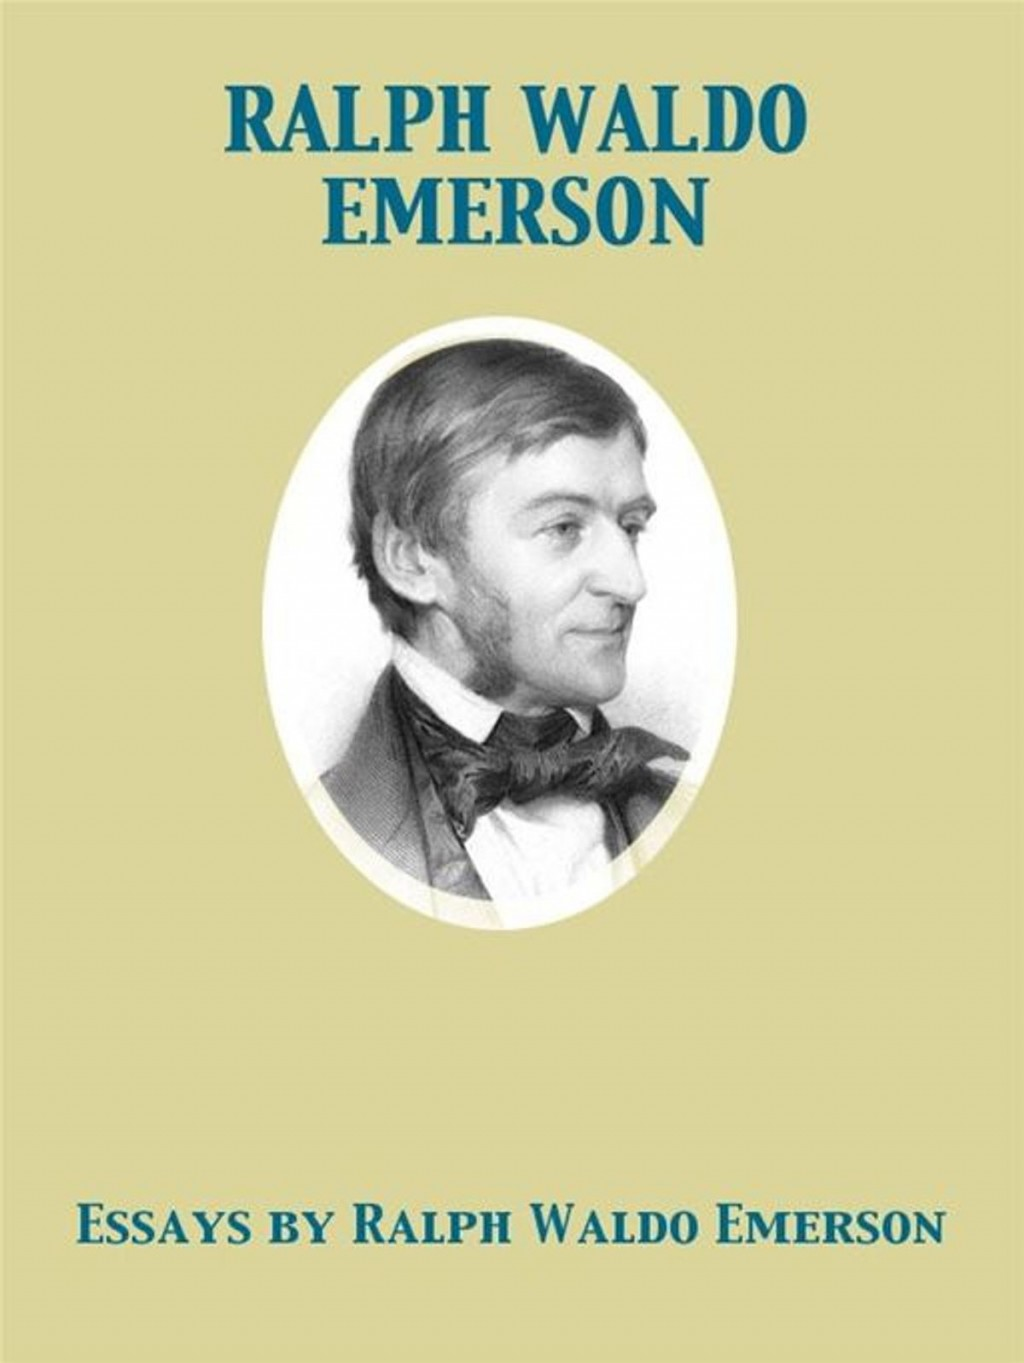 008 Emerson Essays By Ralph Waldo Essay Dreaded Self Reliance And Other Second Series Nature Large